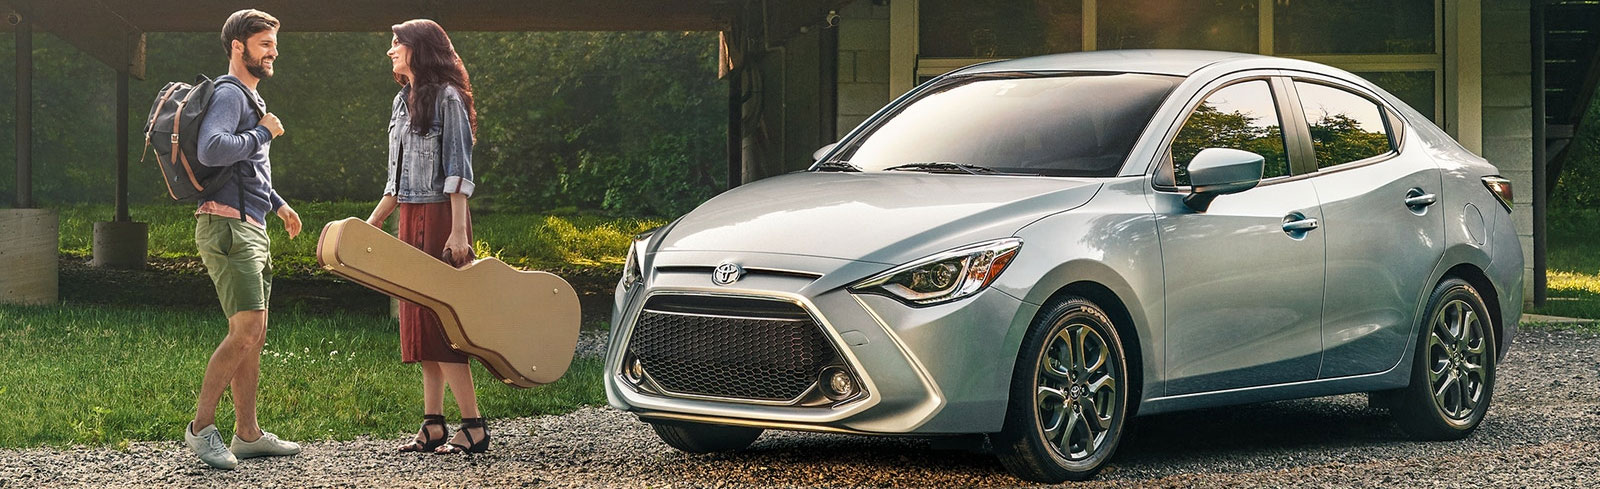 All New 2020 Toyota Yaris for Sale at Future Toyota of Yuba City